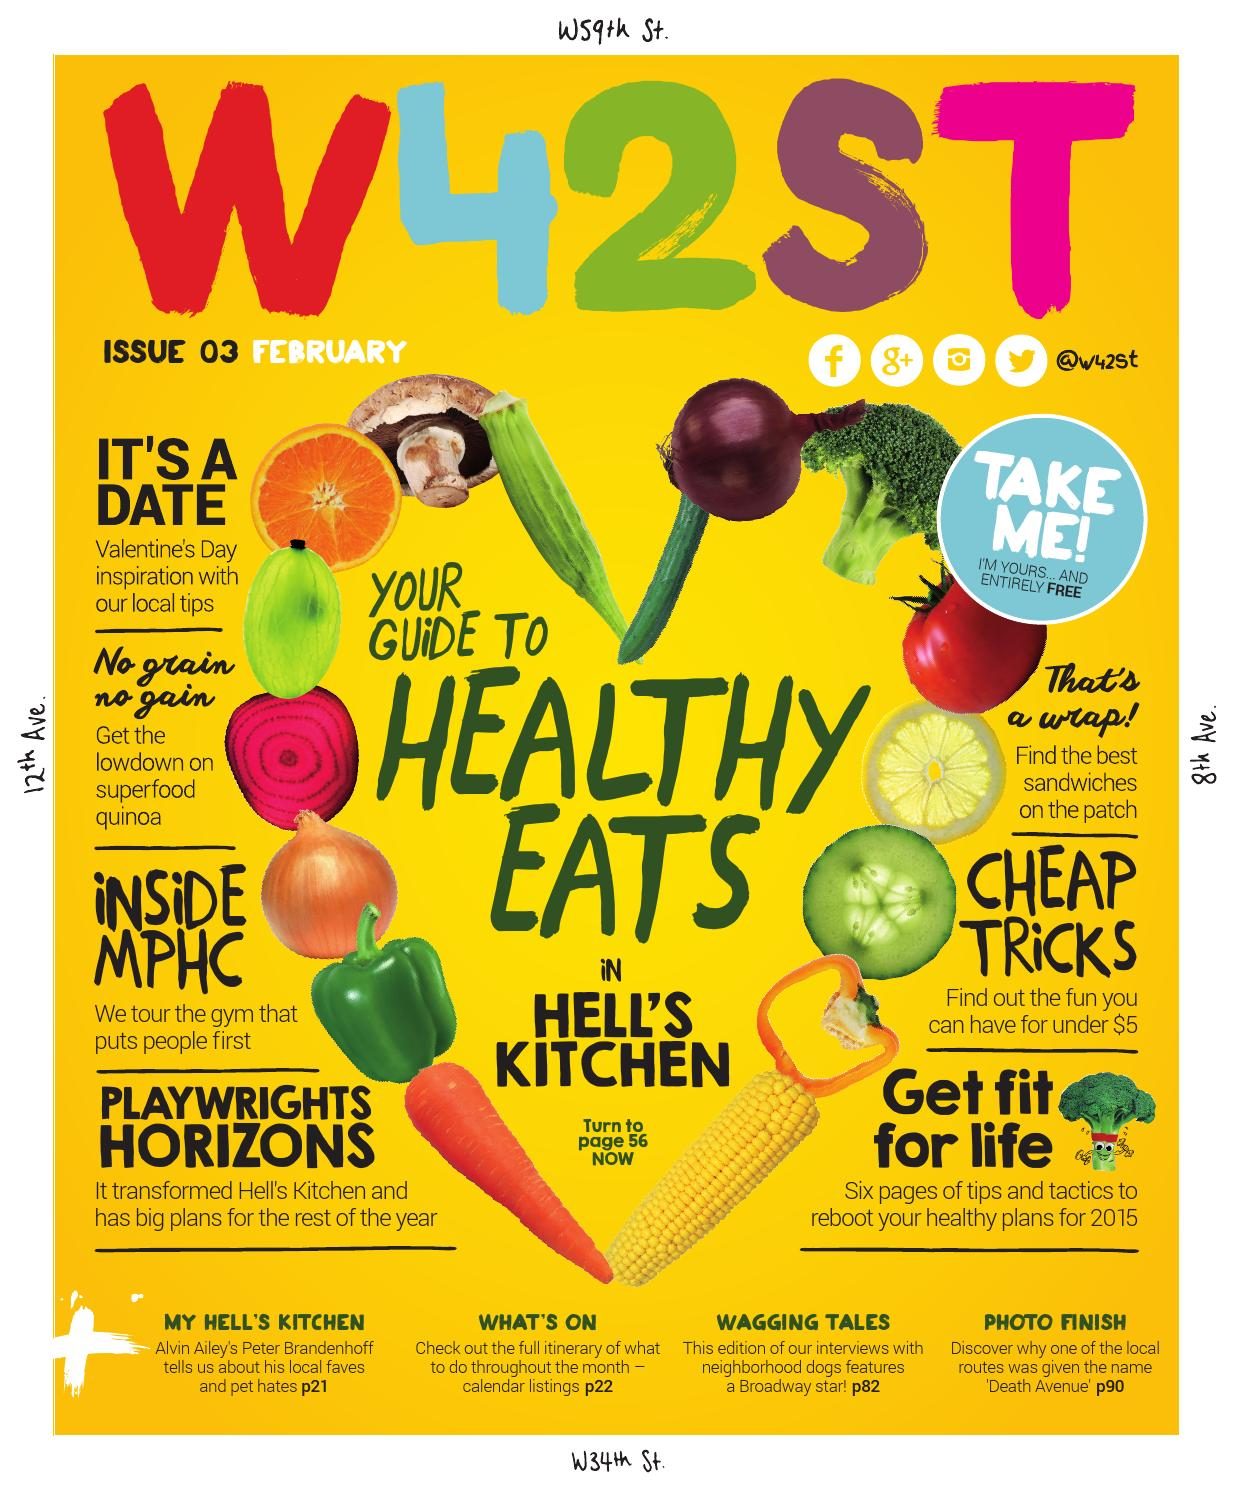 W42ST Magazine Issue 3 - Your Guide to Healthy Eats in Hell's Kitchen